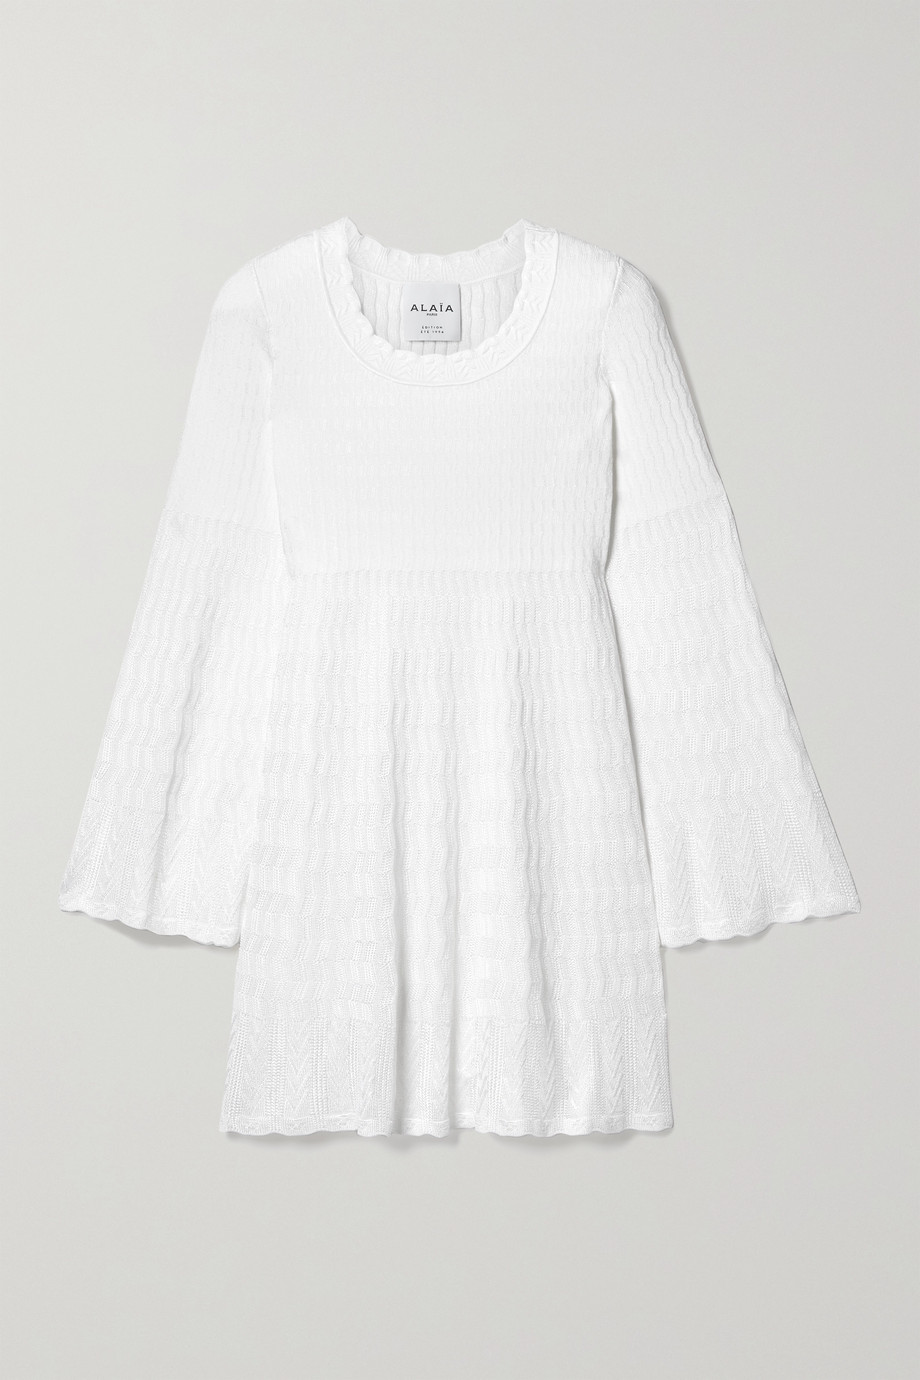 Alaïa Editions knitted tunic